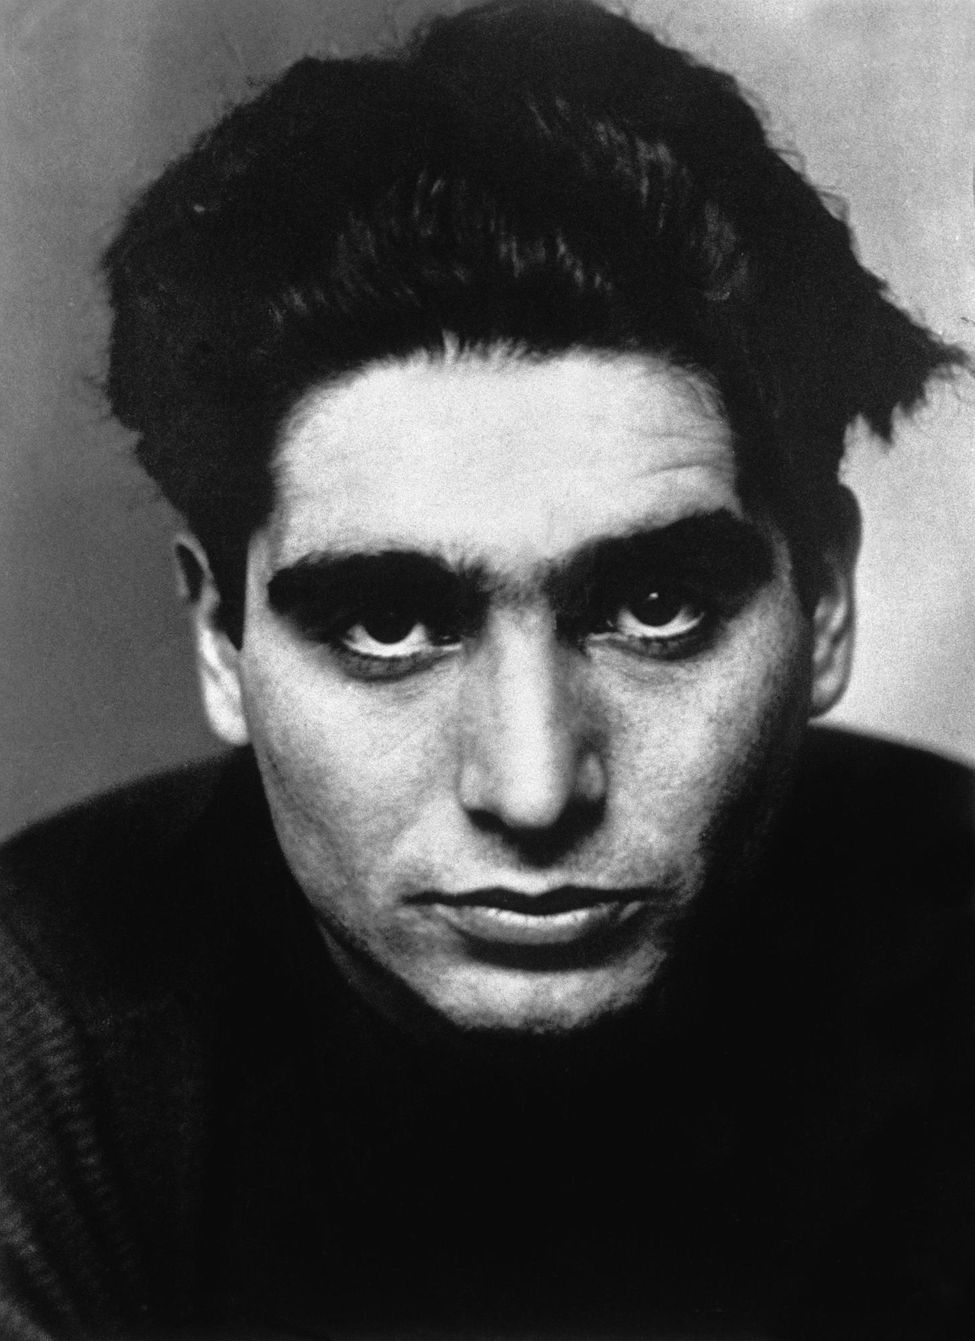 Biographie – Robert Capa (1913-1954)